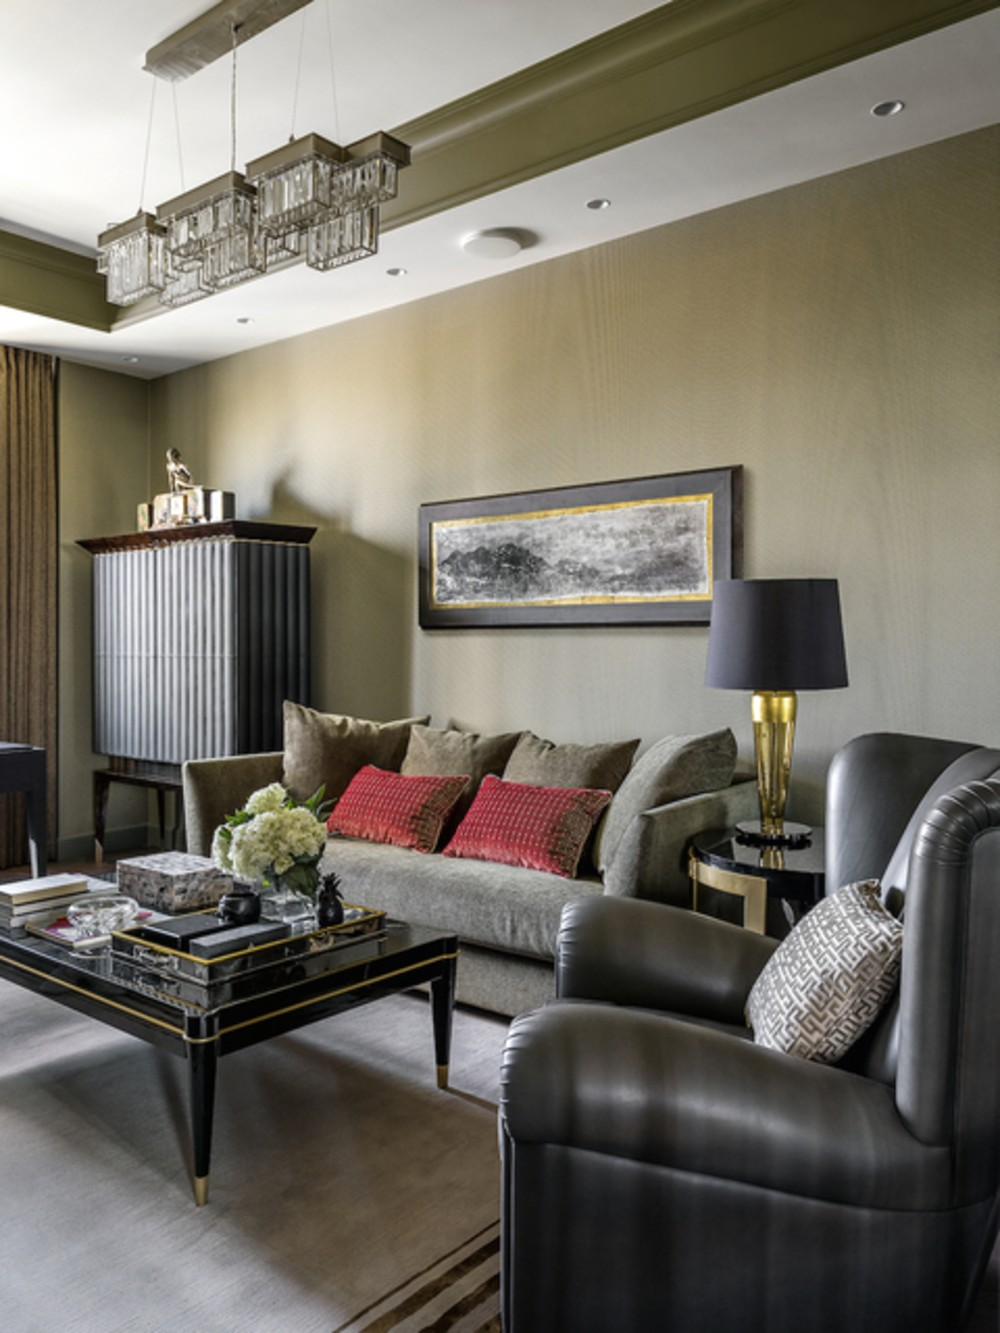 Luxurious Apartment is The Heart of Moscow (2) luxurious apartment in moscow Luxurious Apartment in Moscow That Will Take Your Breath Away Luxurious Apartment is The Heart of Moscow 2